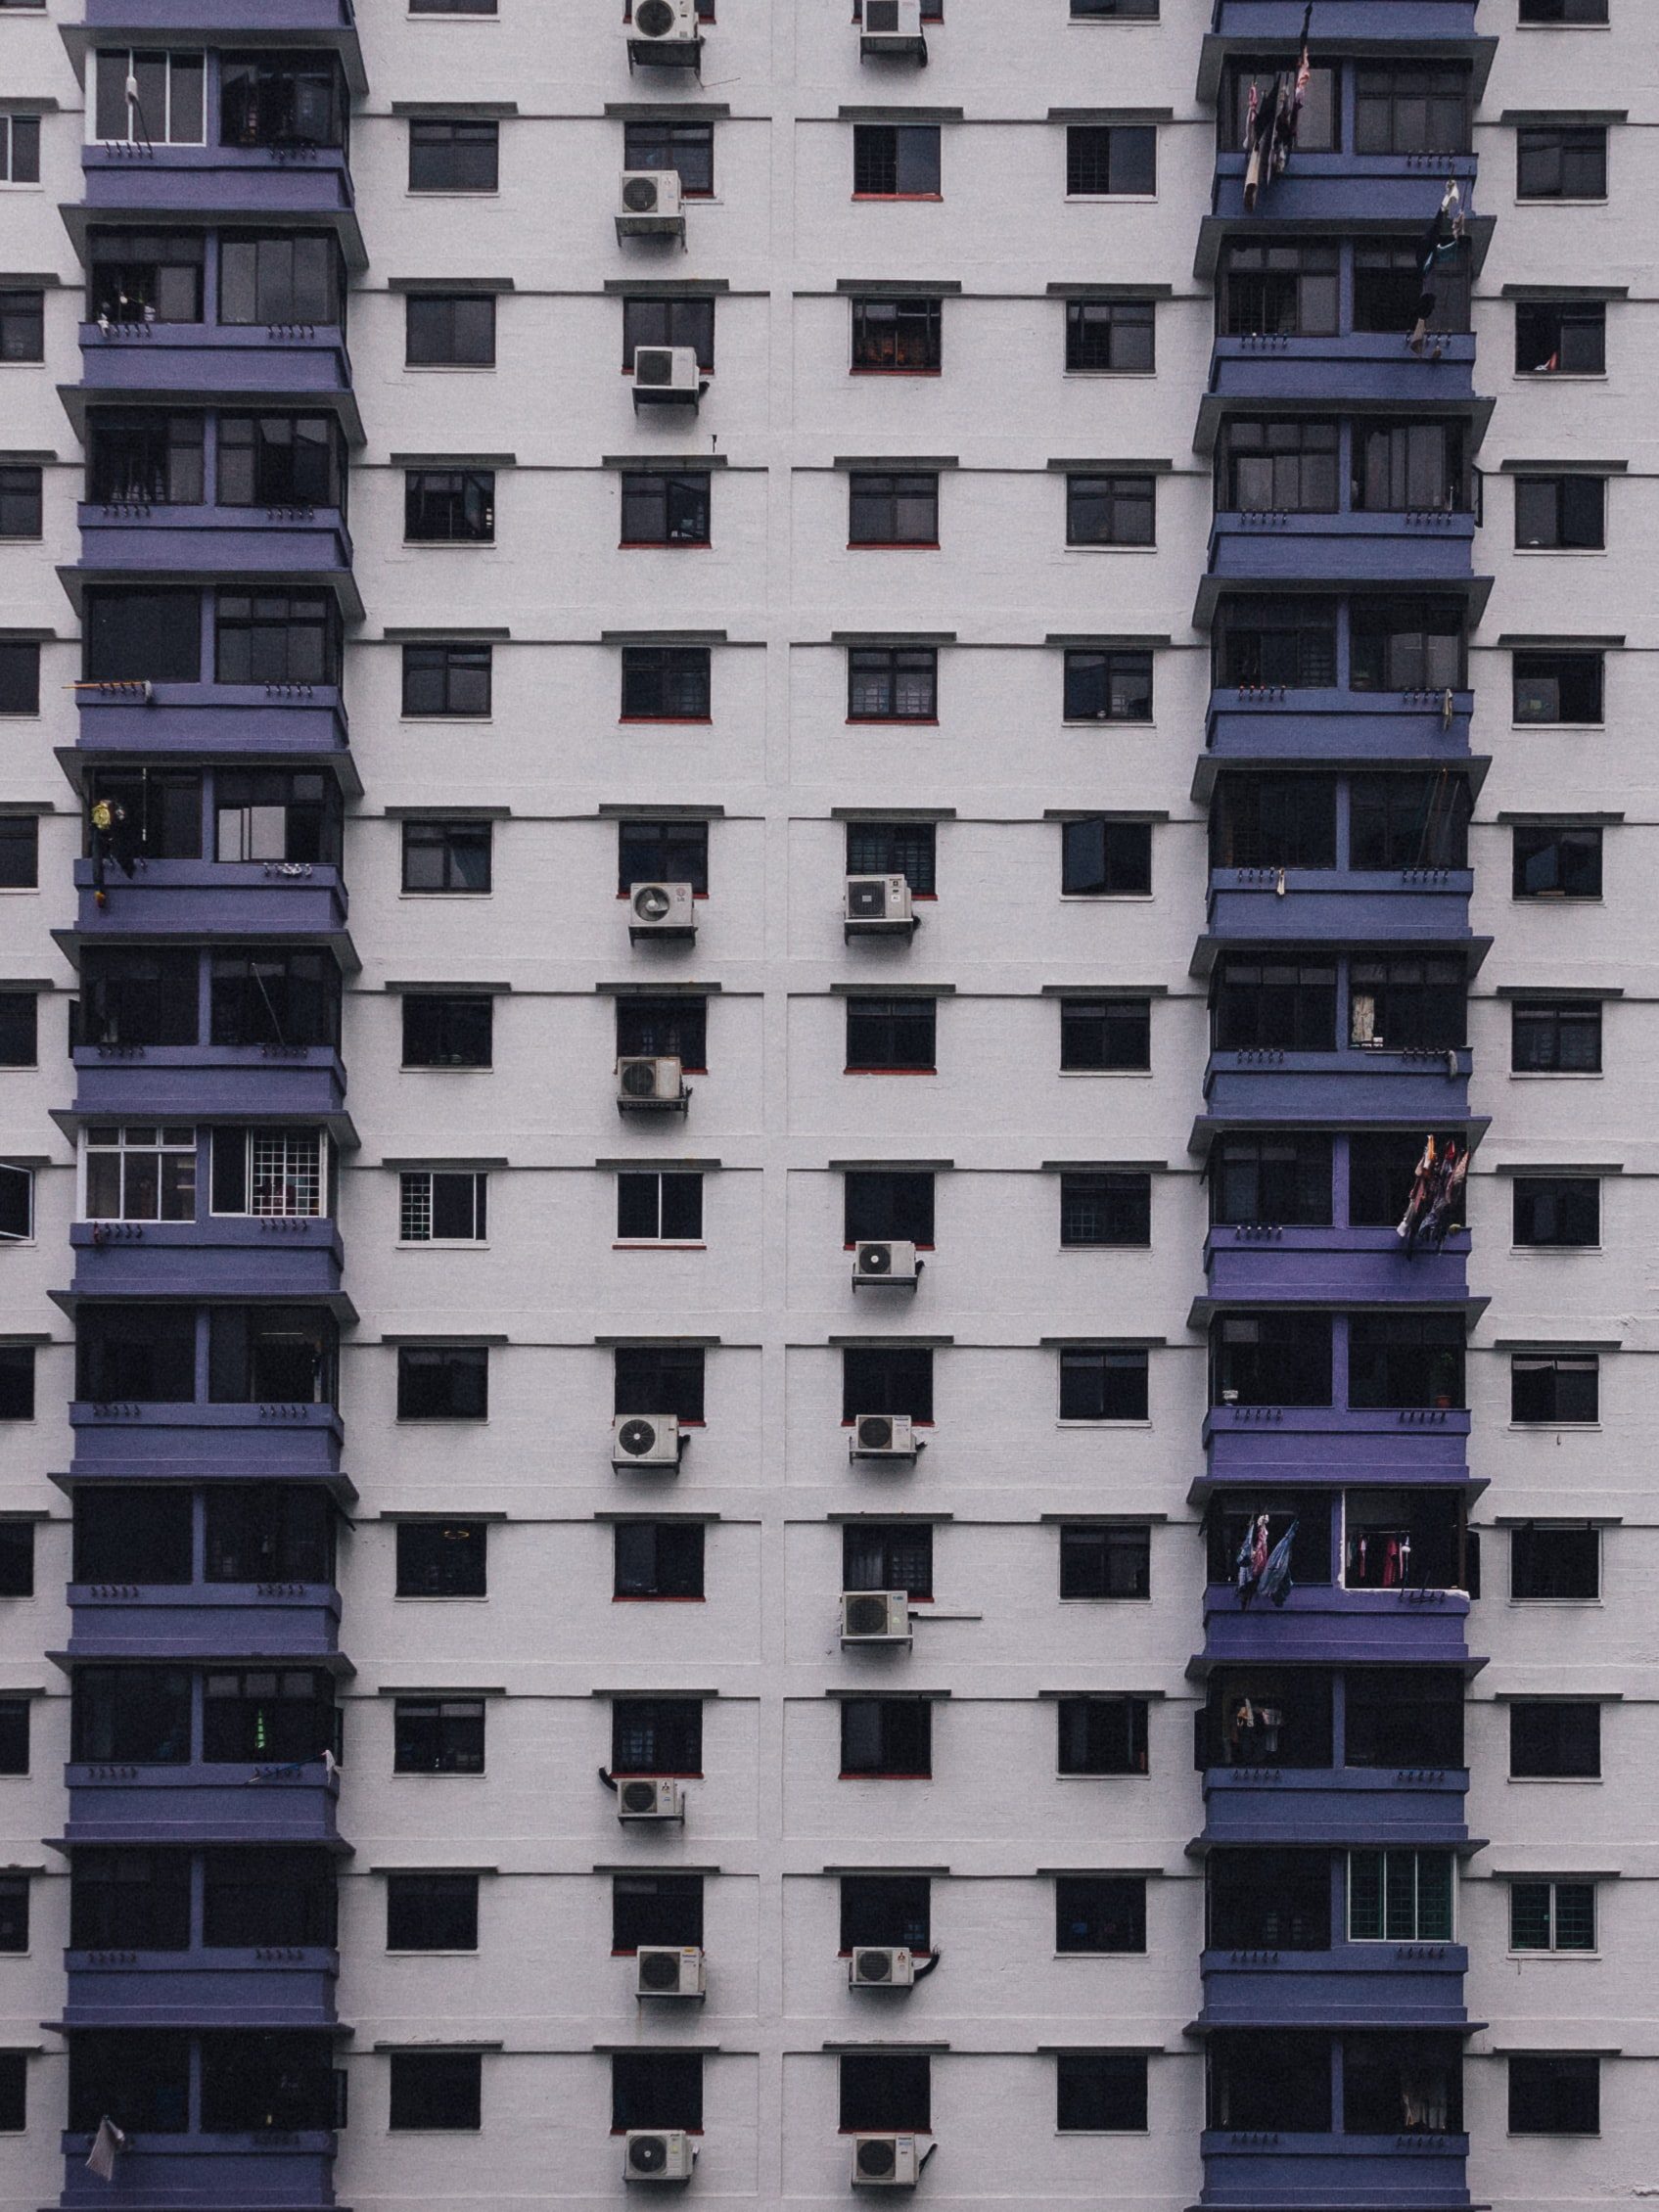 white and purple concrete high-rise building view during daytime